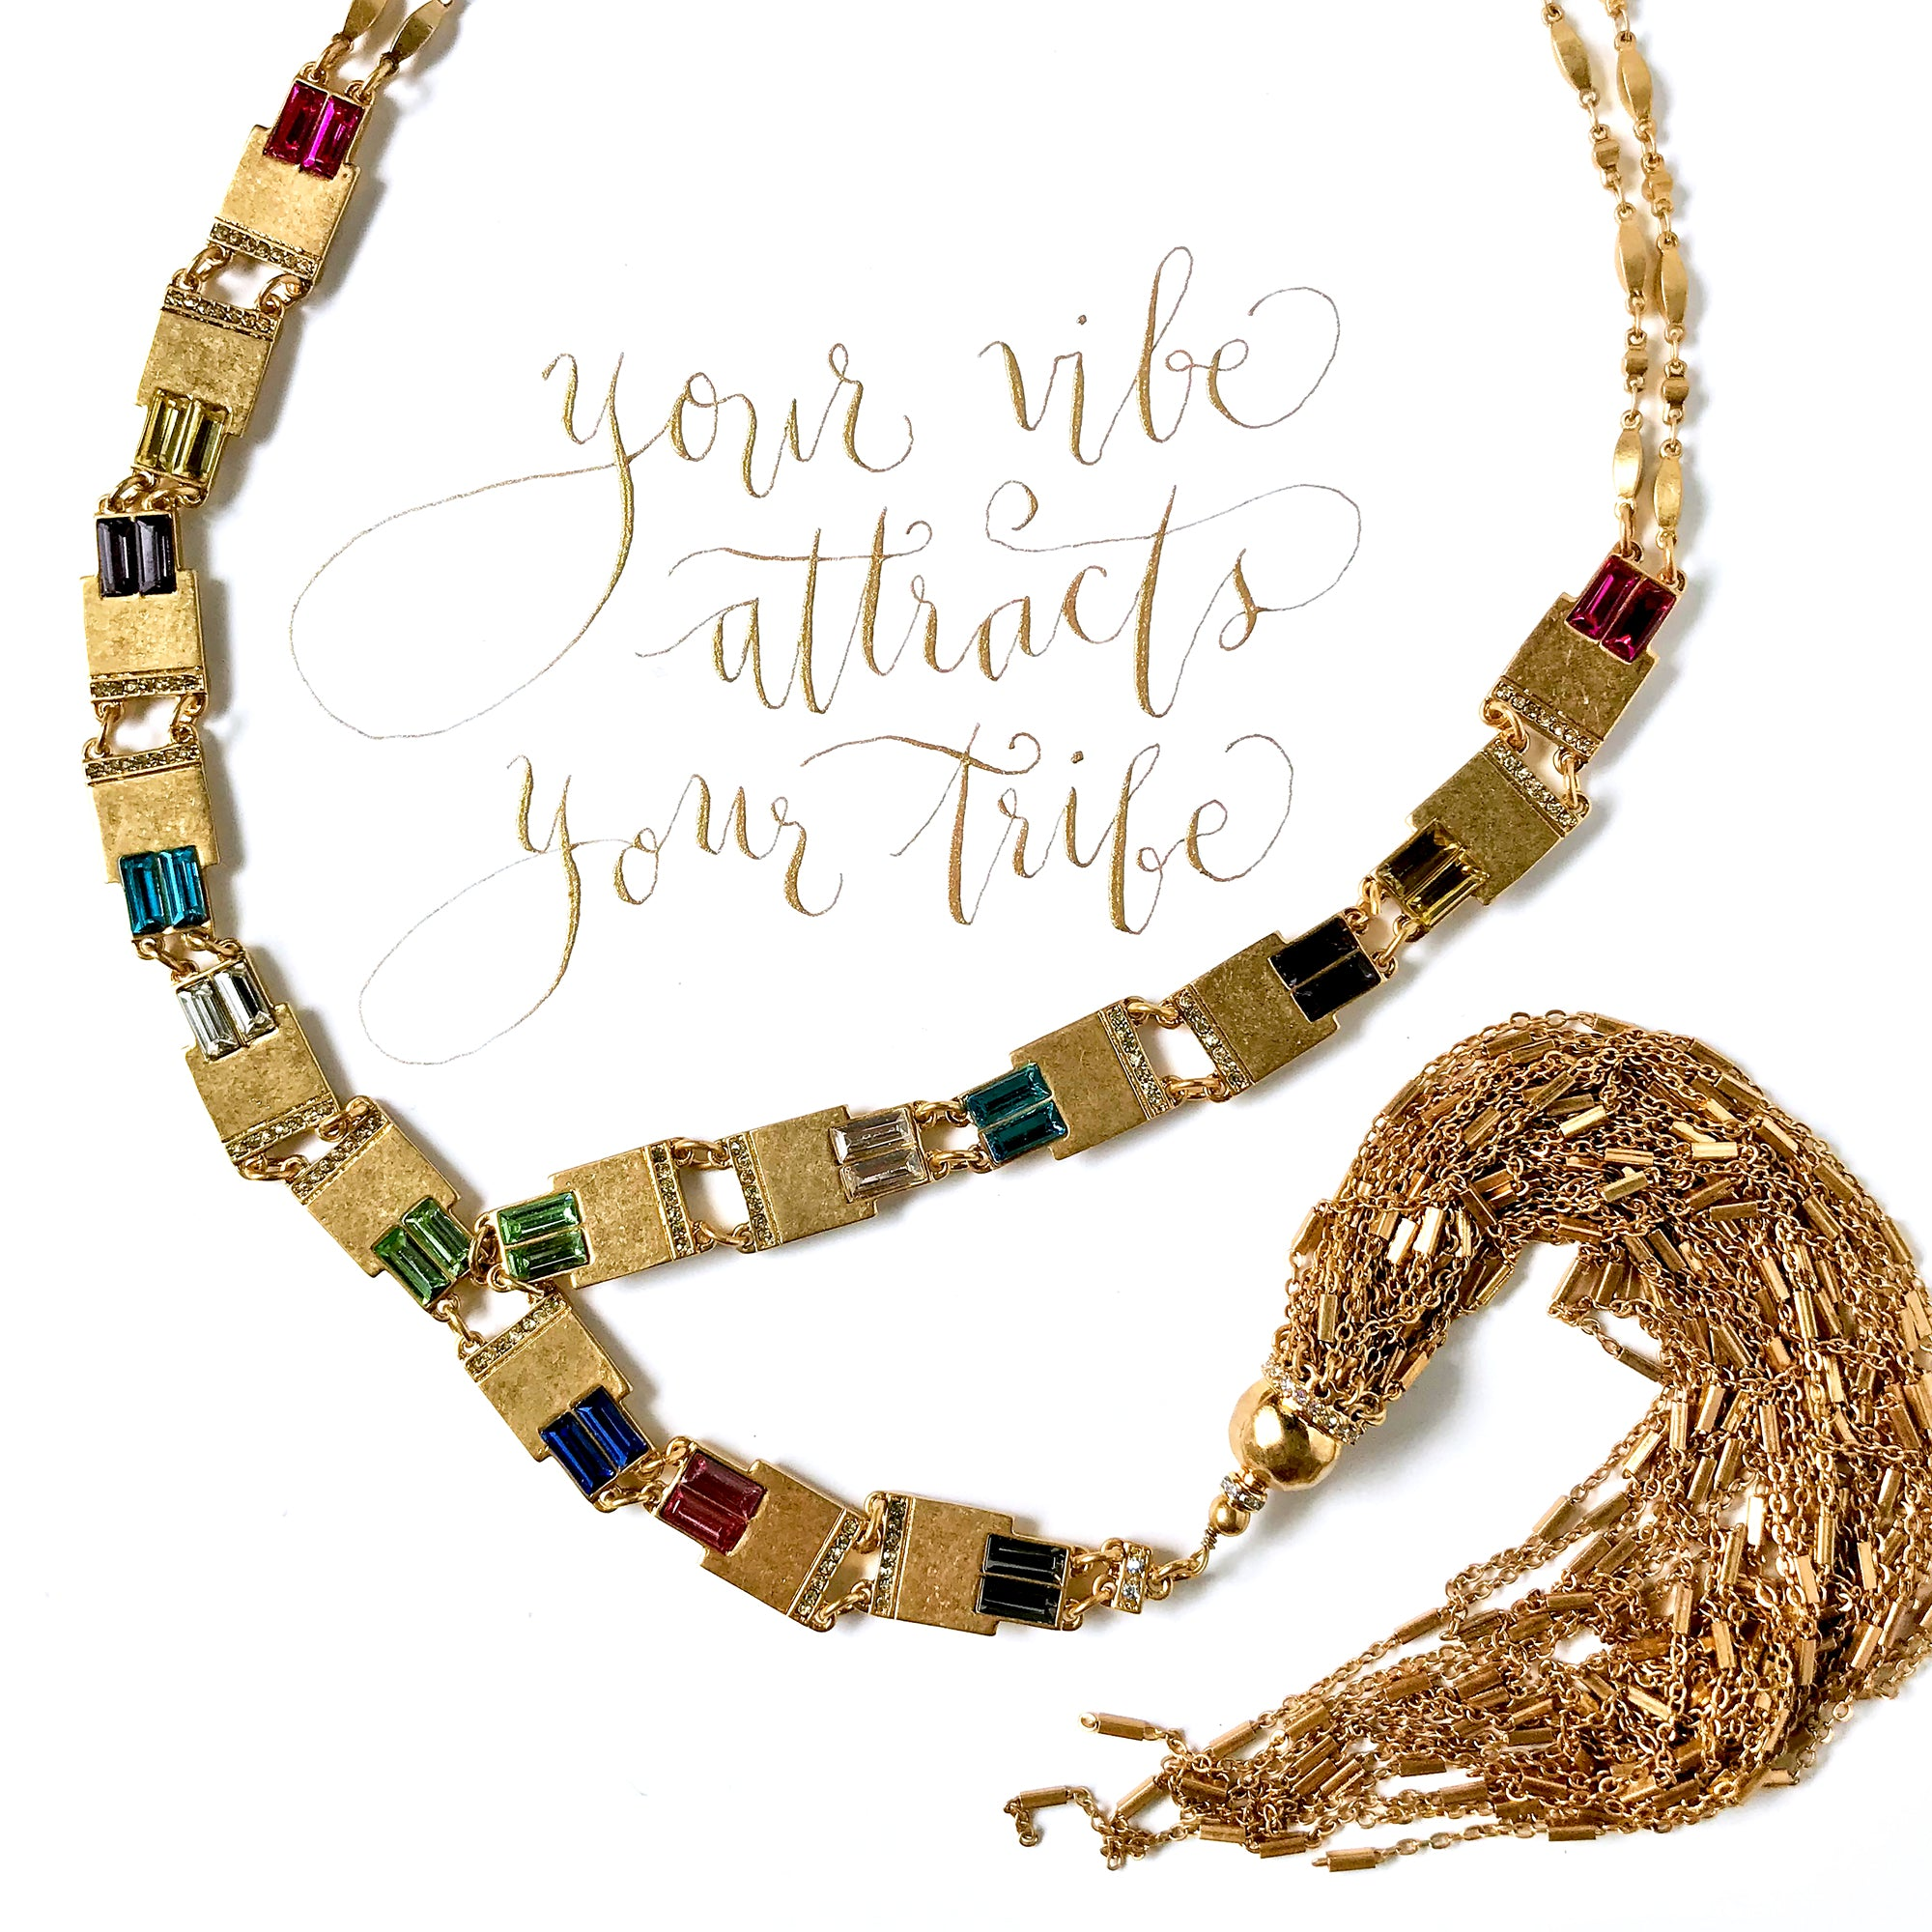 #SequinSayings - Your Vibe Attracts Your Tribe